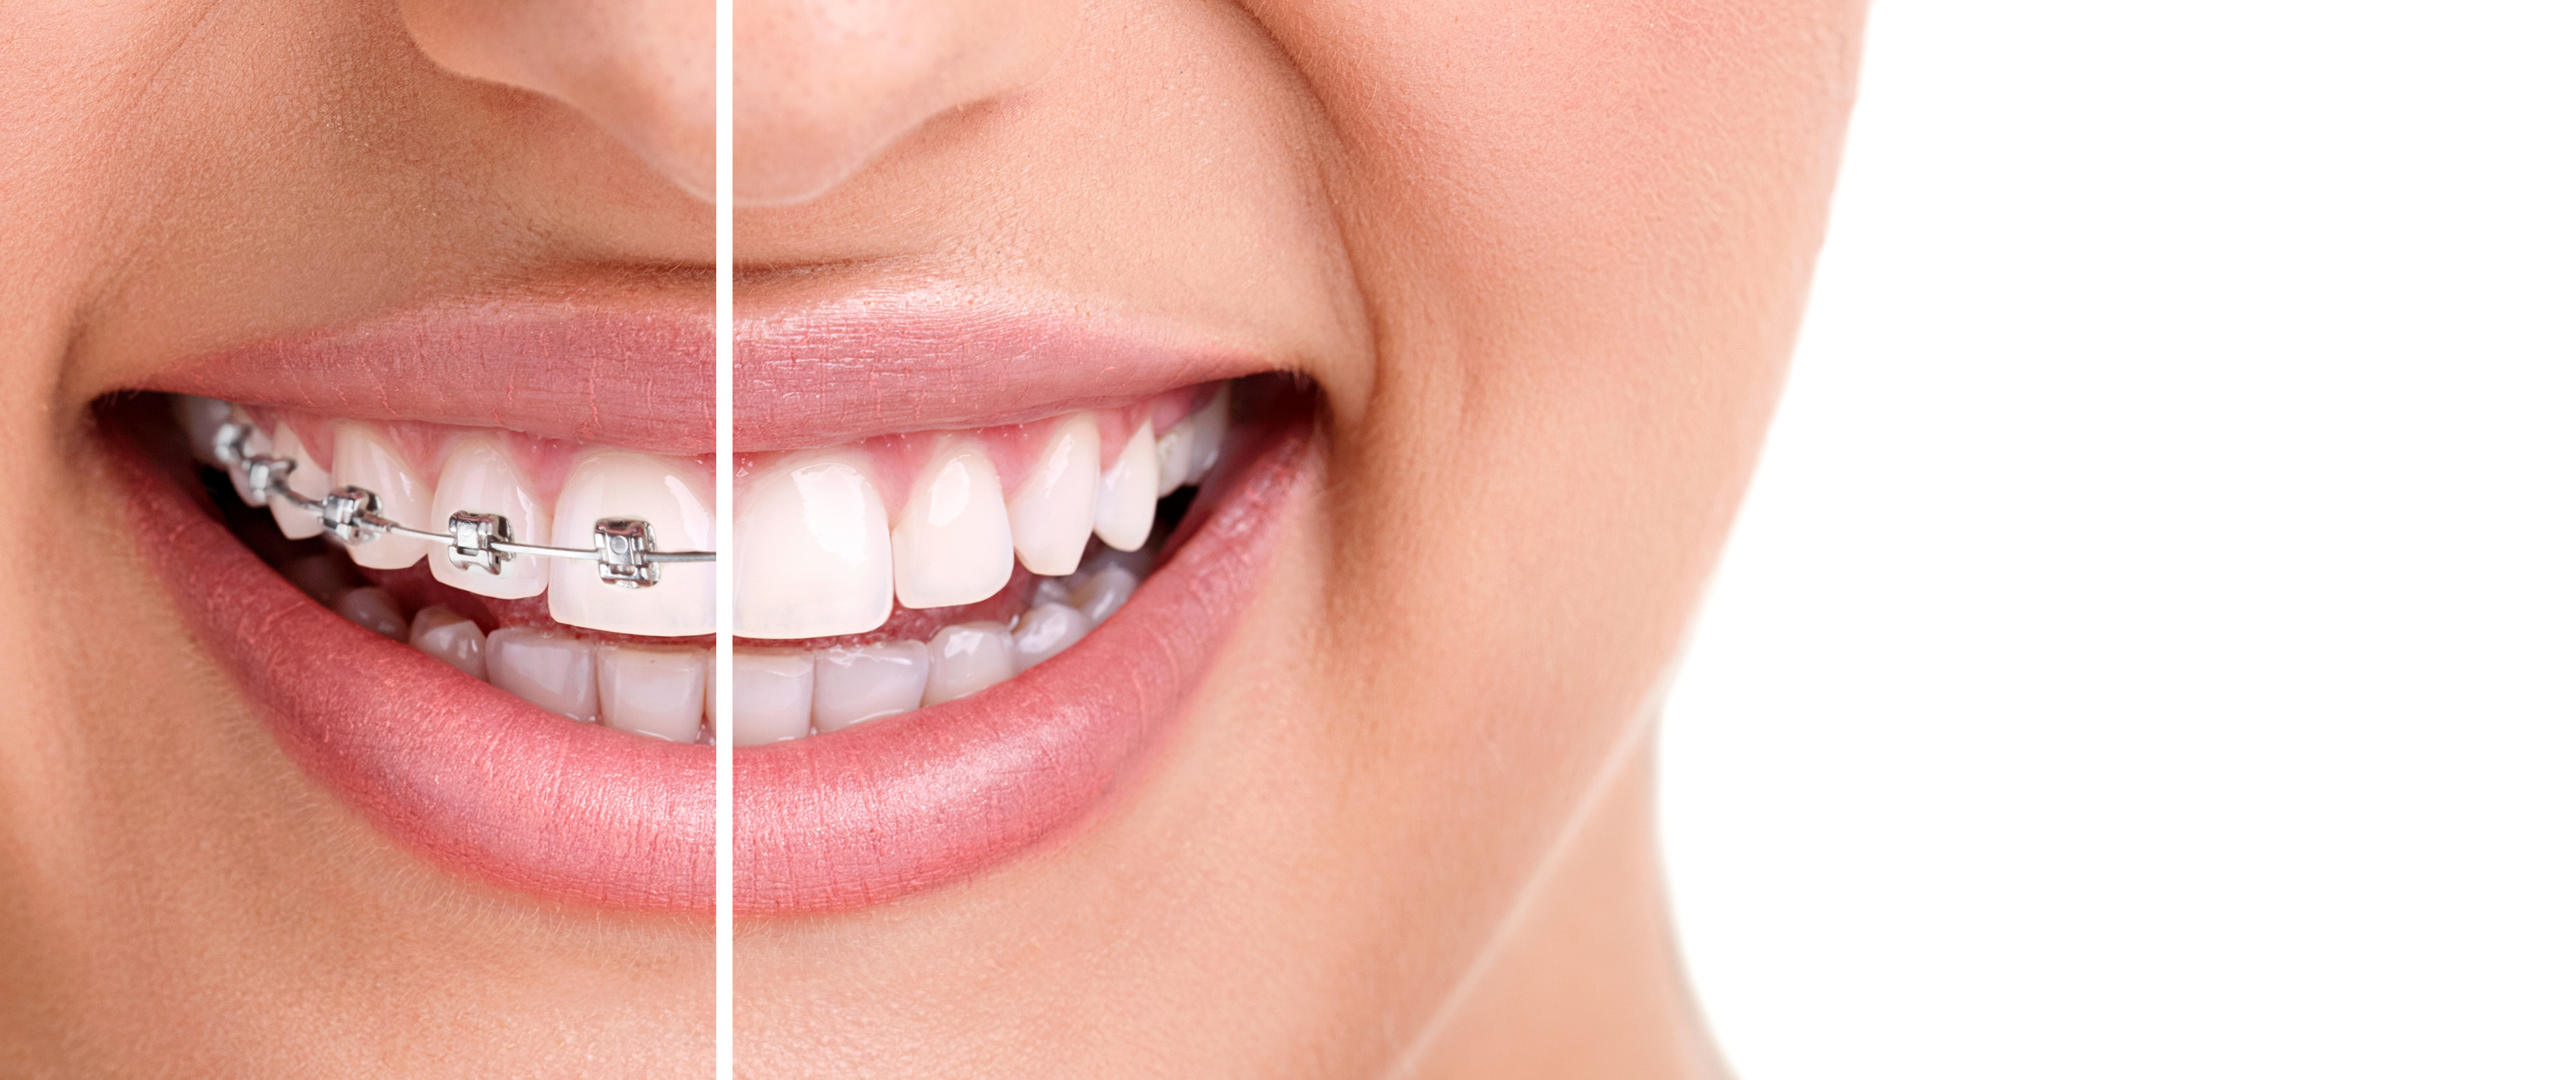 Invisalign costs and benefits smiles by white john white dds msd invisalign cost benefits solutioingenieria Choice Image